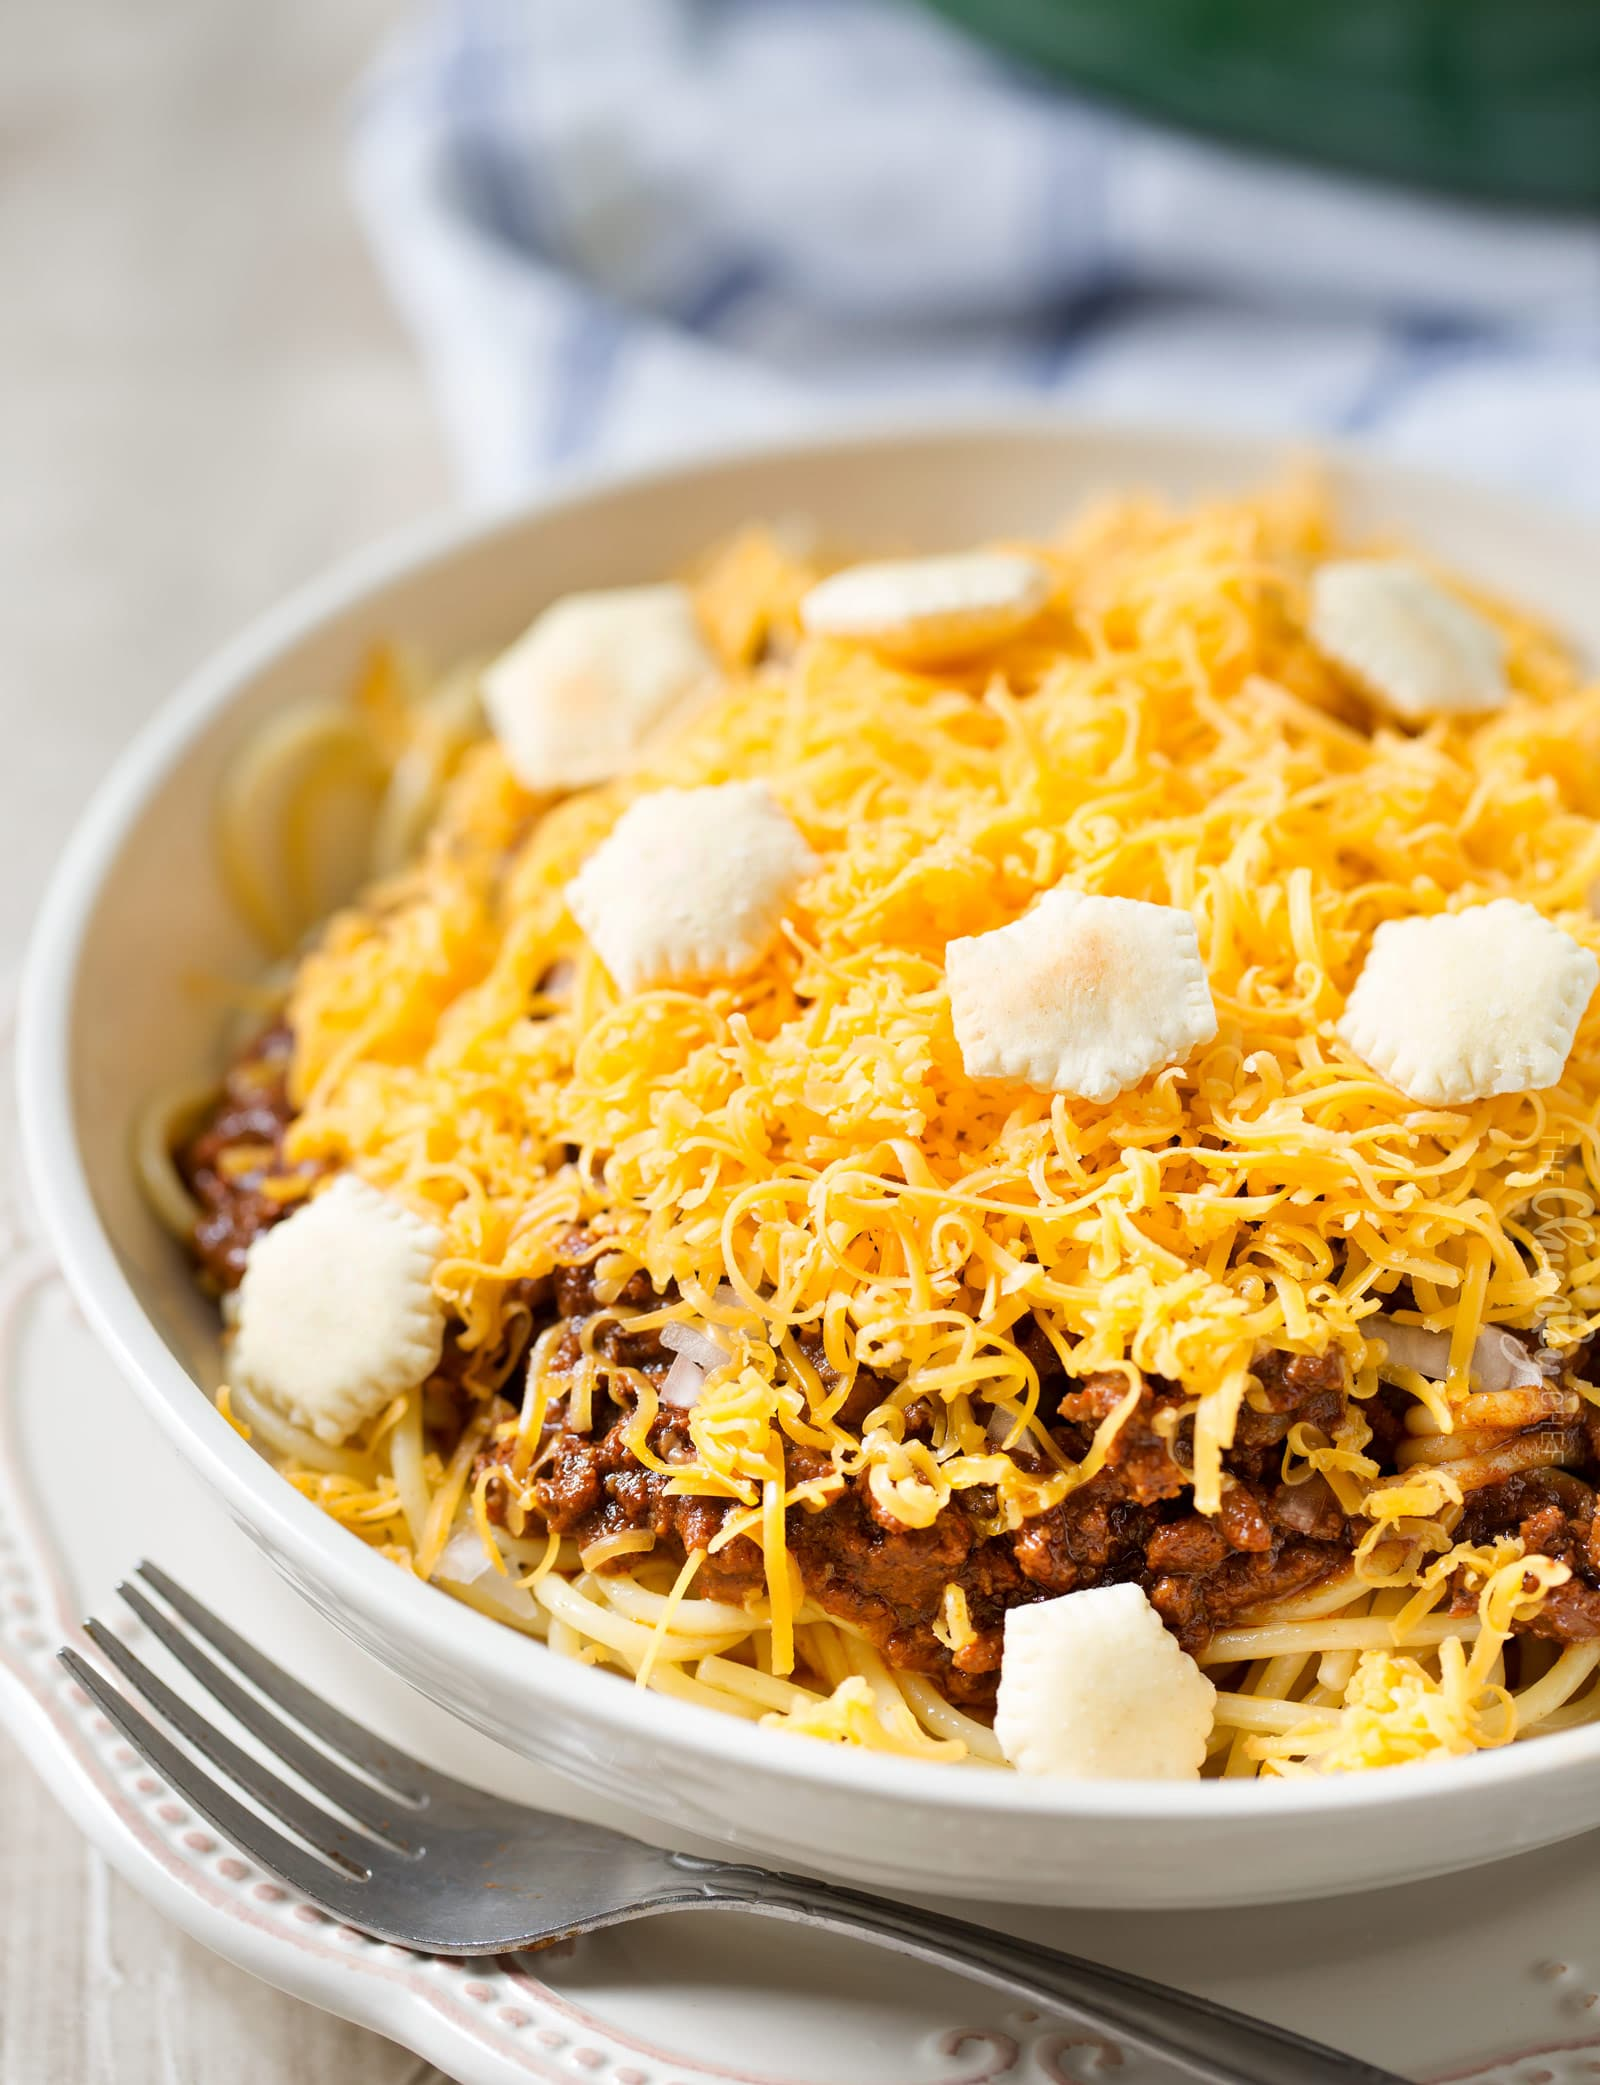 Classic Skyline chili recipe three way with oyster crackers